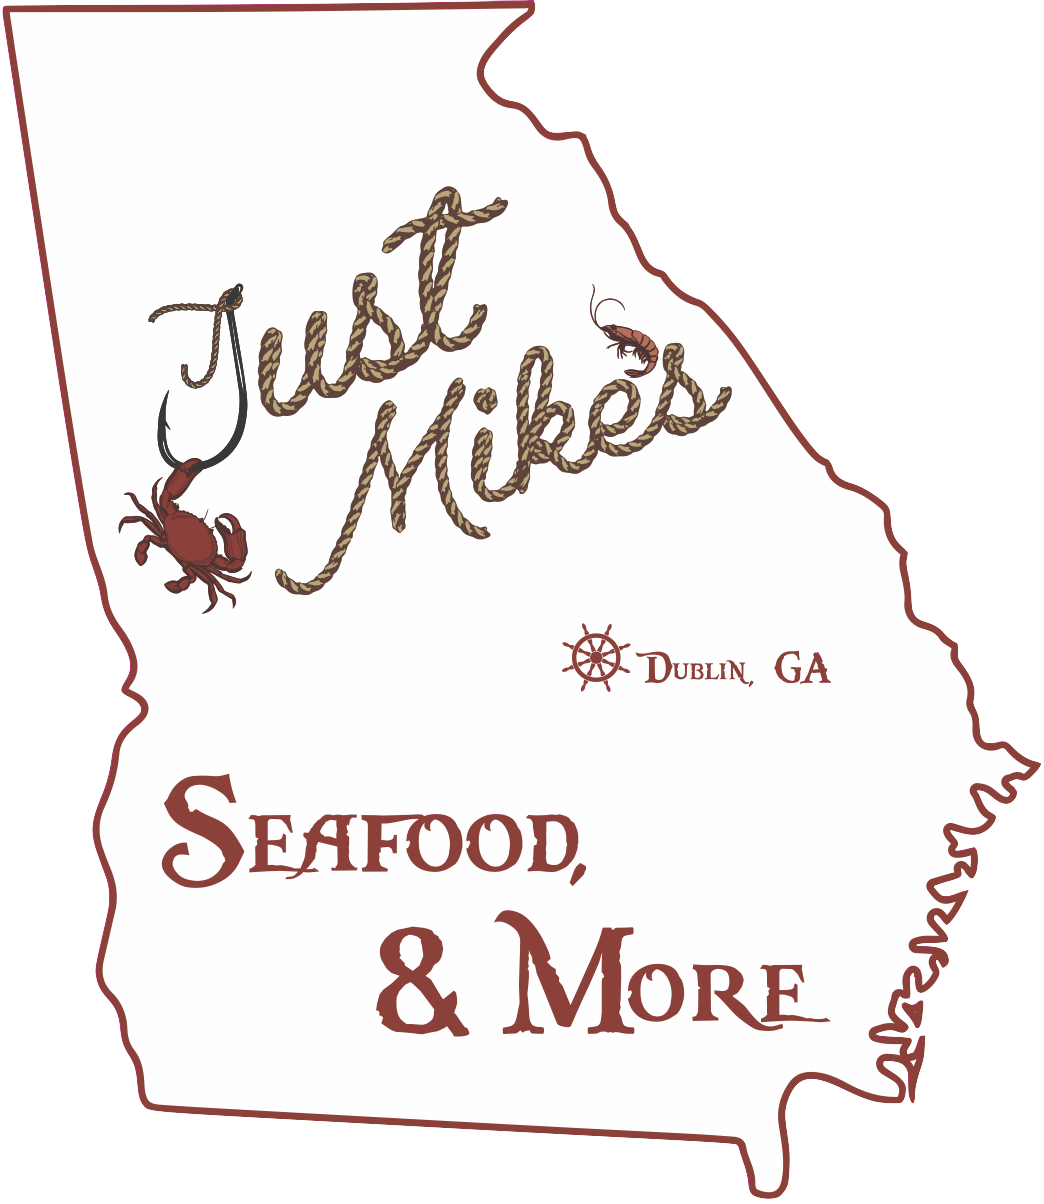 Just Mike's Seafood